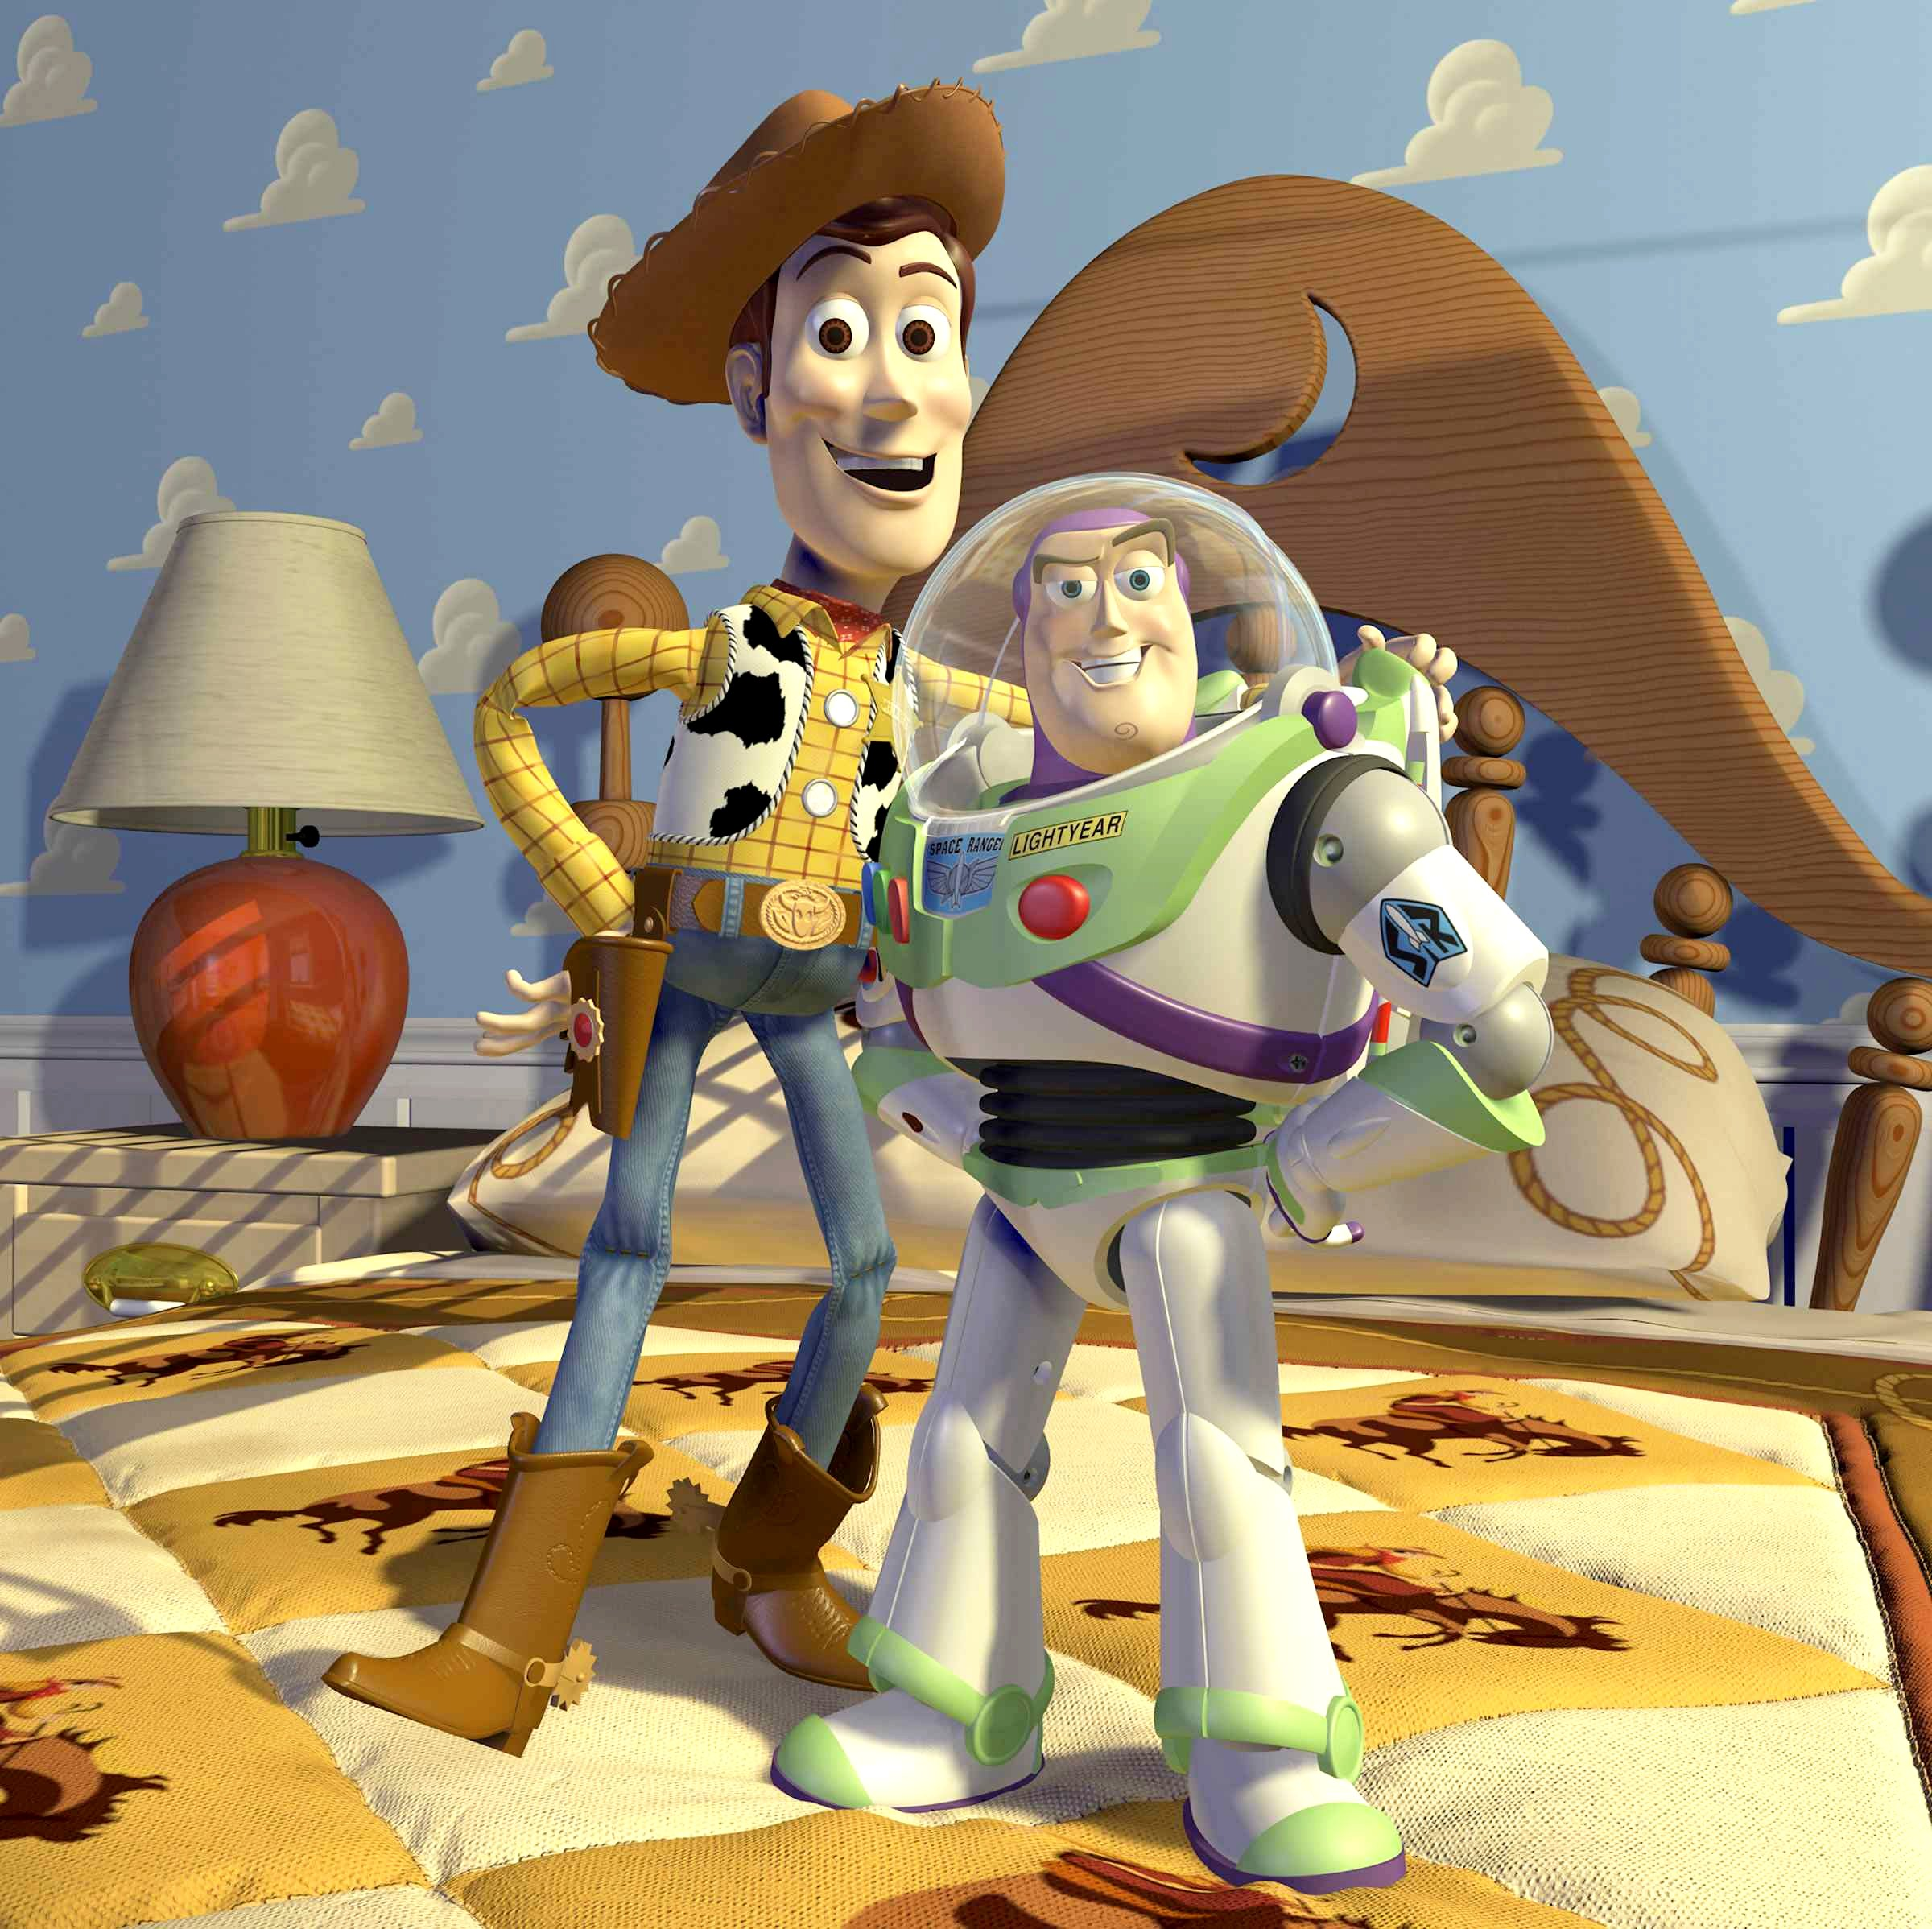 Toy Story 3 Woody and Buzz Wallpaper, Desktop, HD, Free Download ...